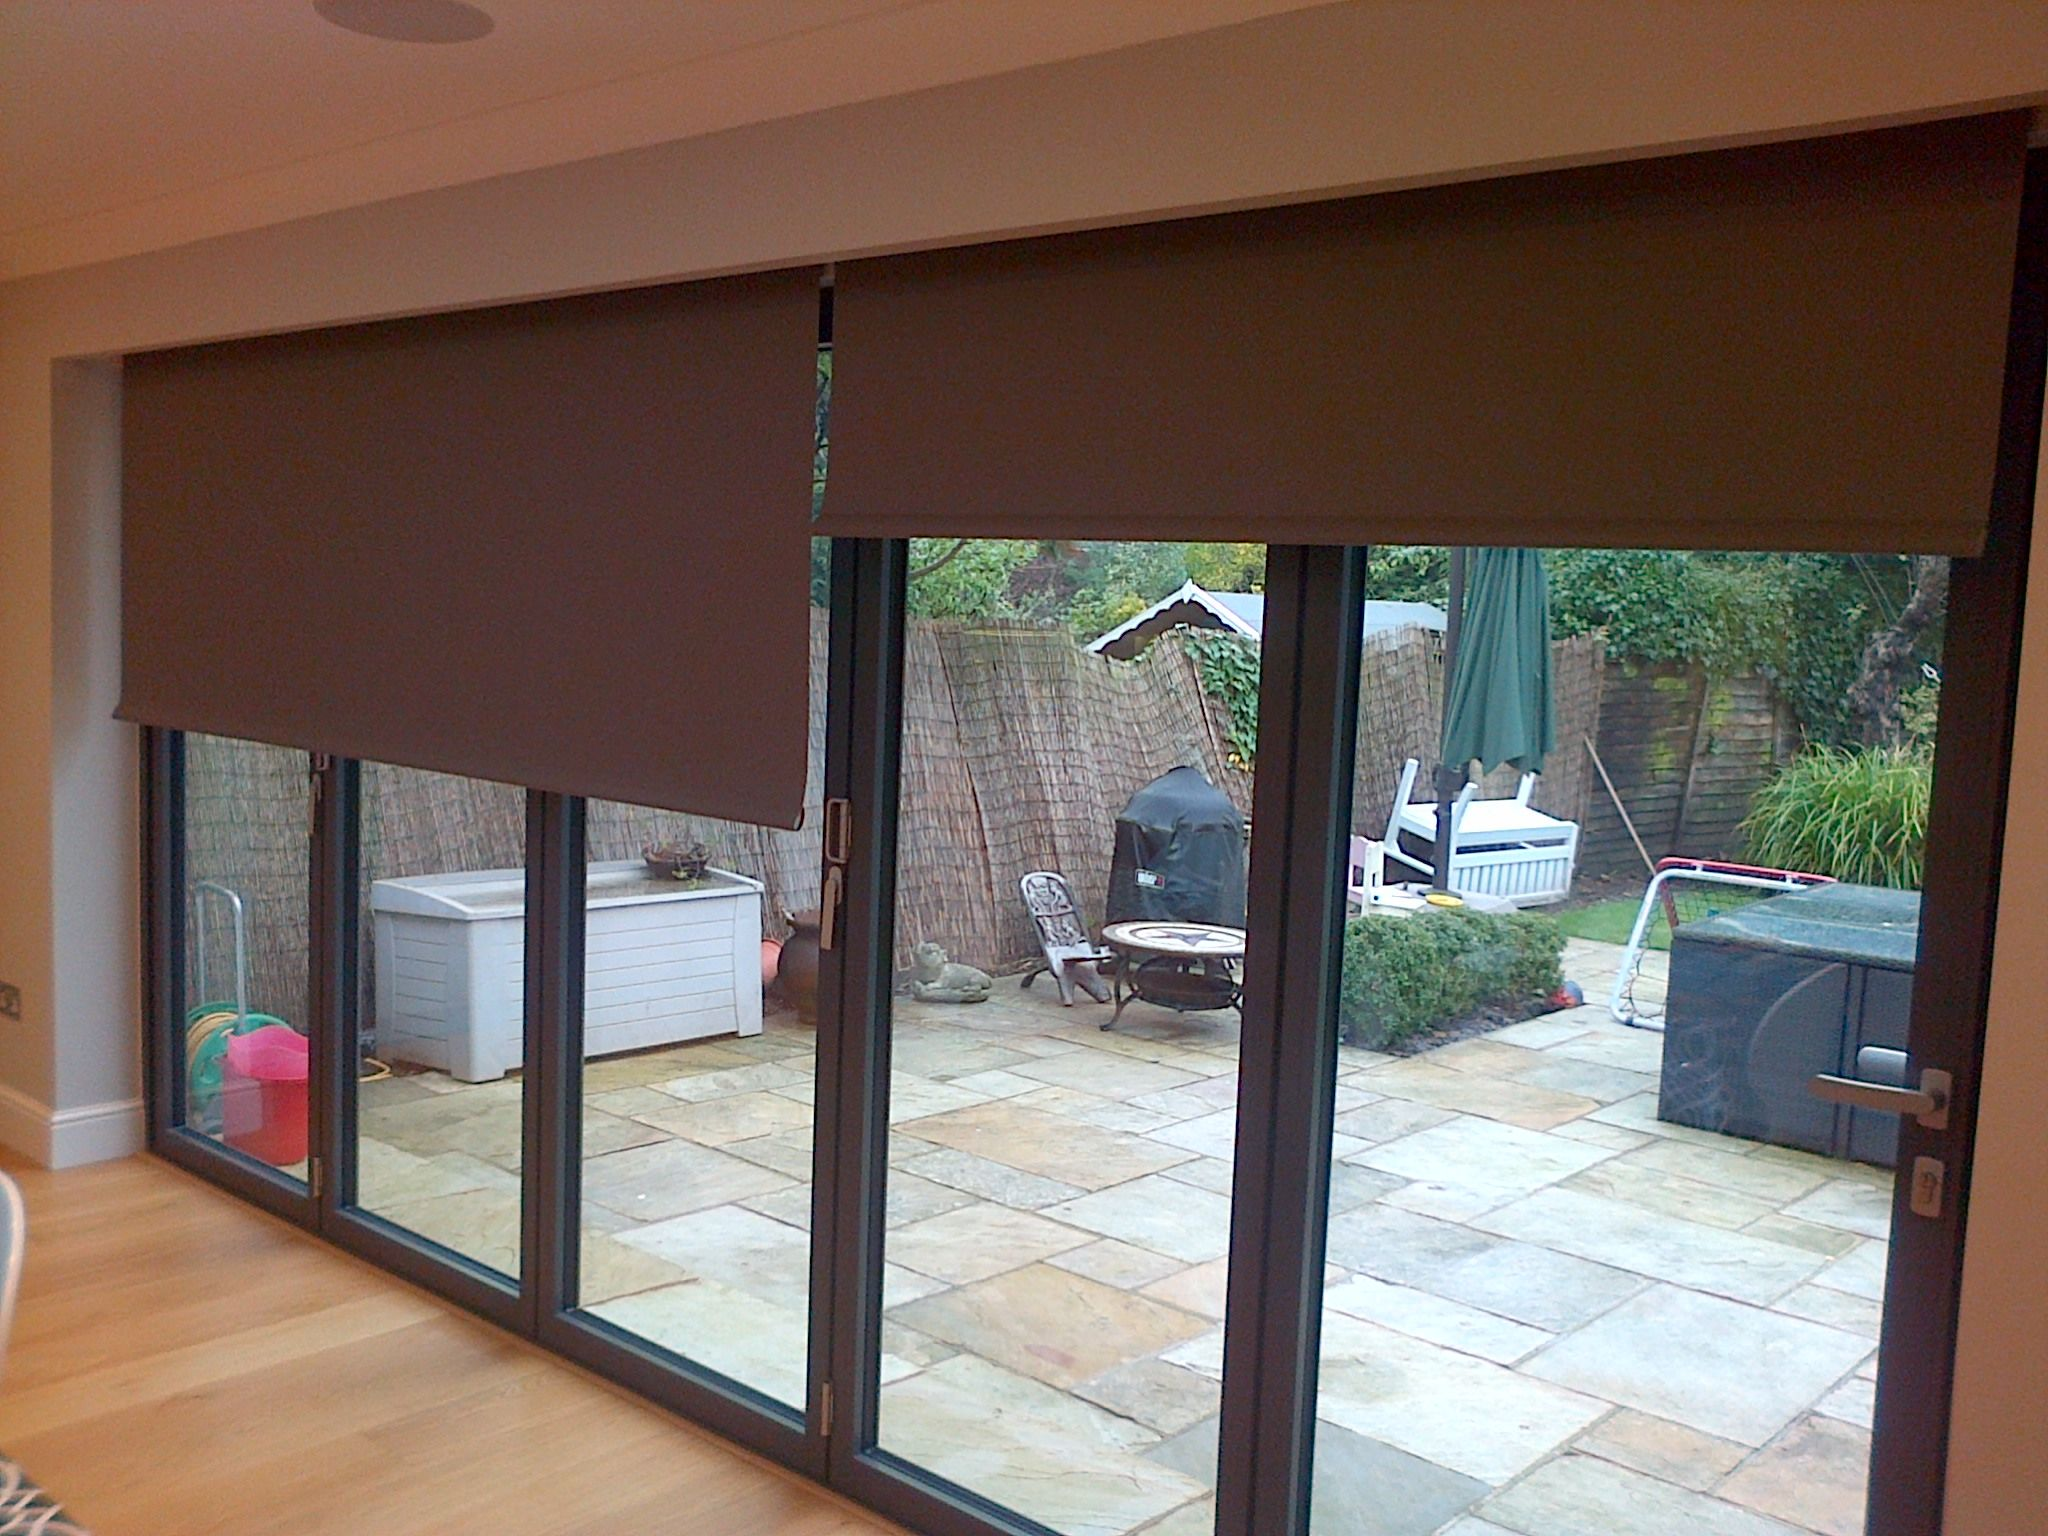 One Up One Down Complete Control Over You Electric Blinds Over The Bifold Doors By Deans Blinds Awnin Living Room Blinds Vertical Window Blinds House Blinds